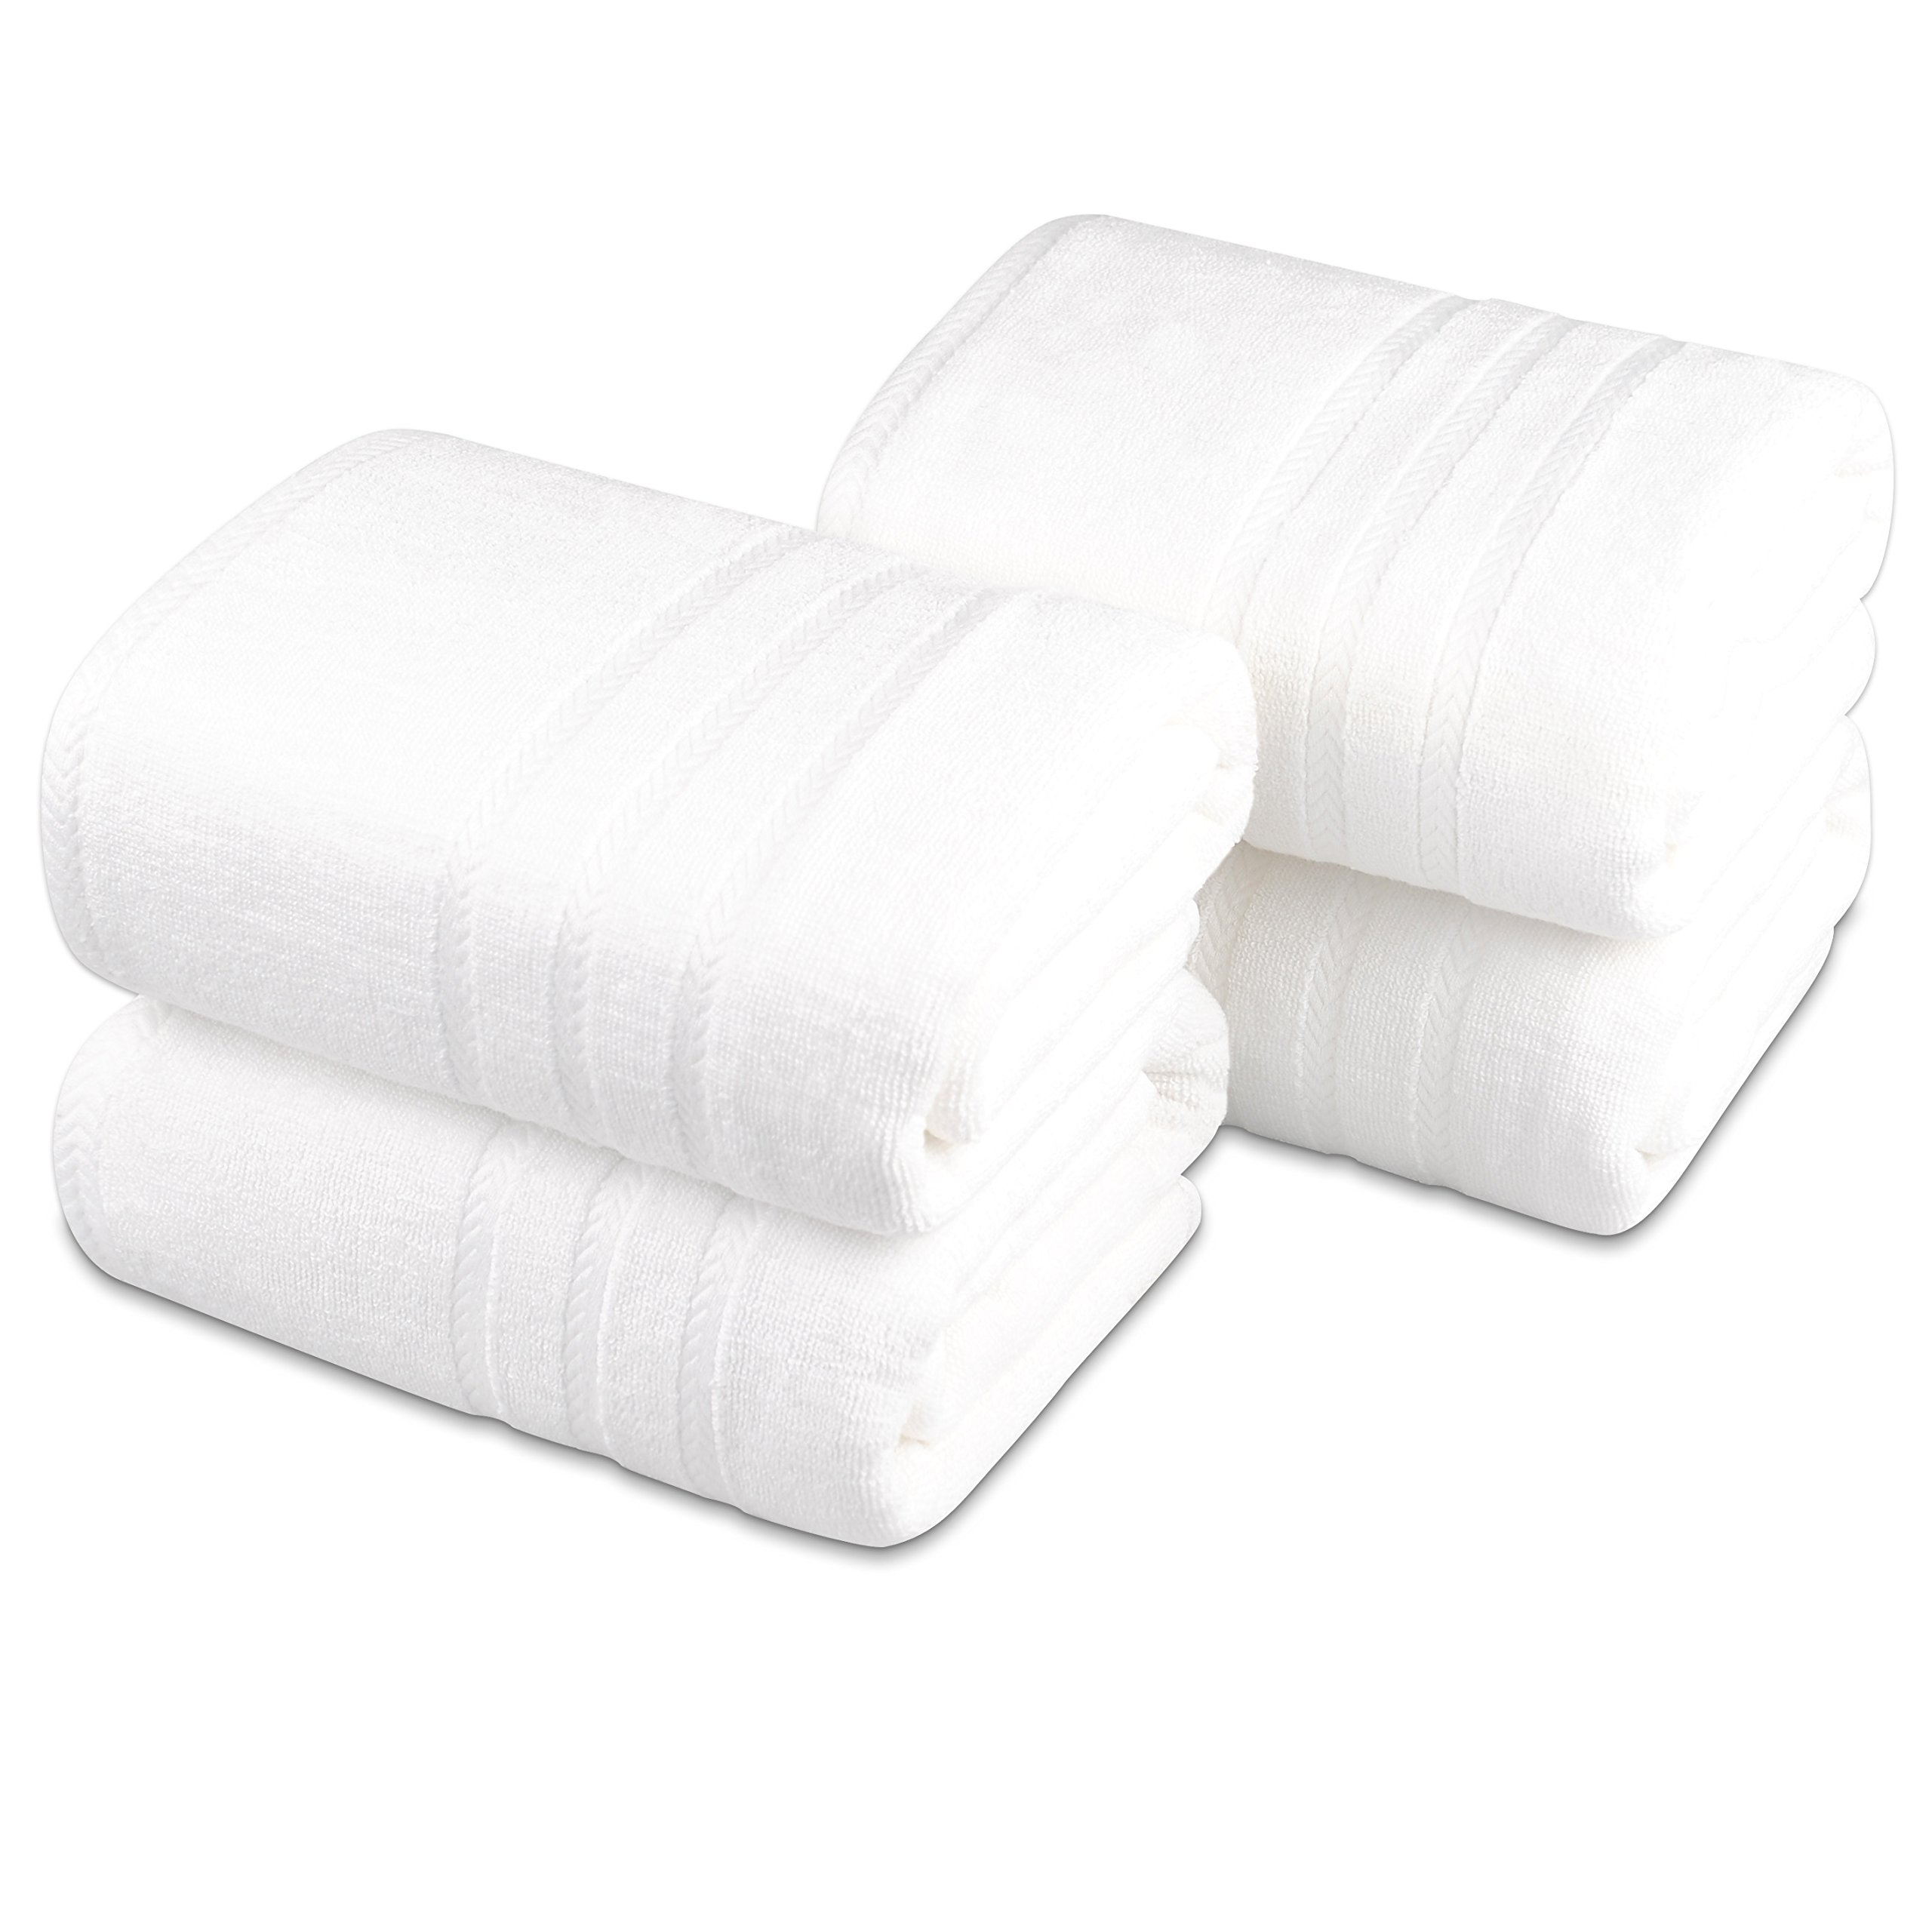 White Bath Towels Sets -Pack of 4 -Heavy Weight ,Oversize 28 X 55 Inch, 600 GSM, Made by Premium Bamboo Cotton,Ultra Soft for Everyday Use by Bamboo Classic (Image #2)